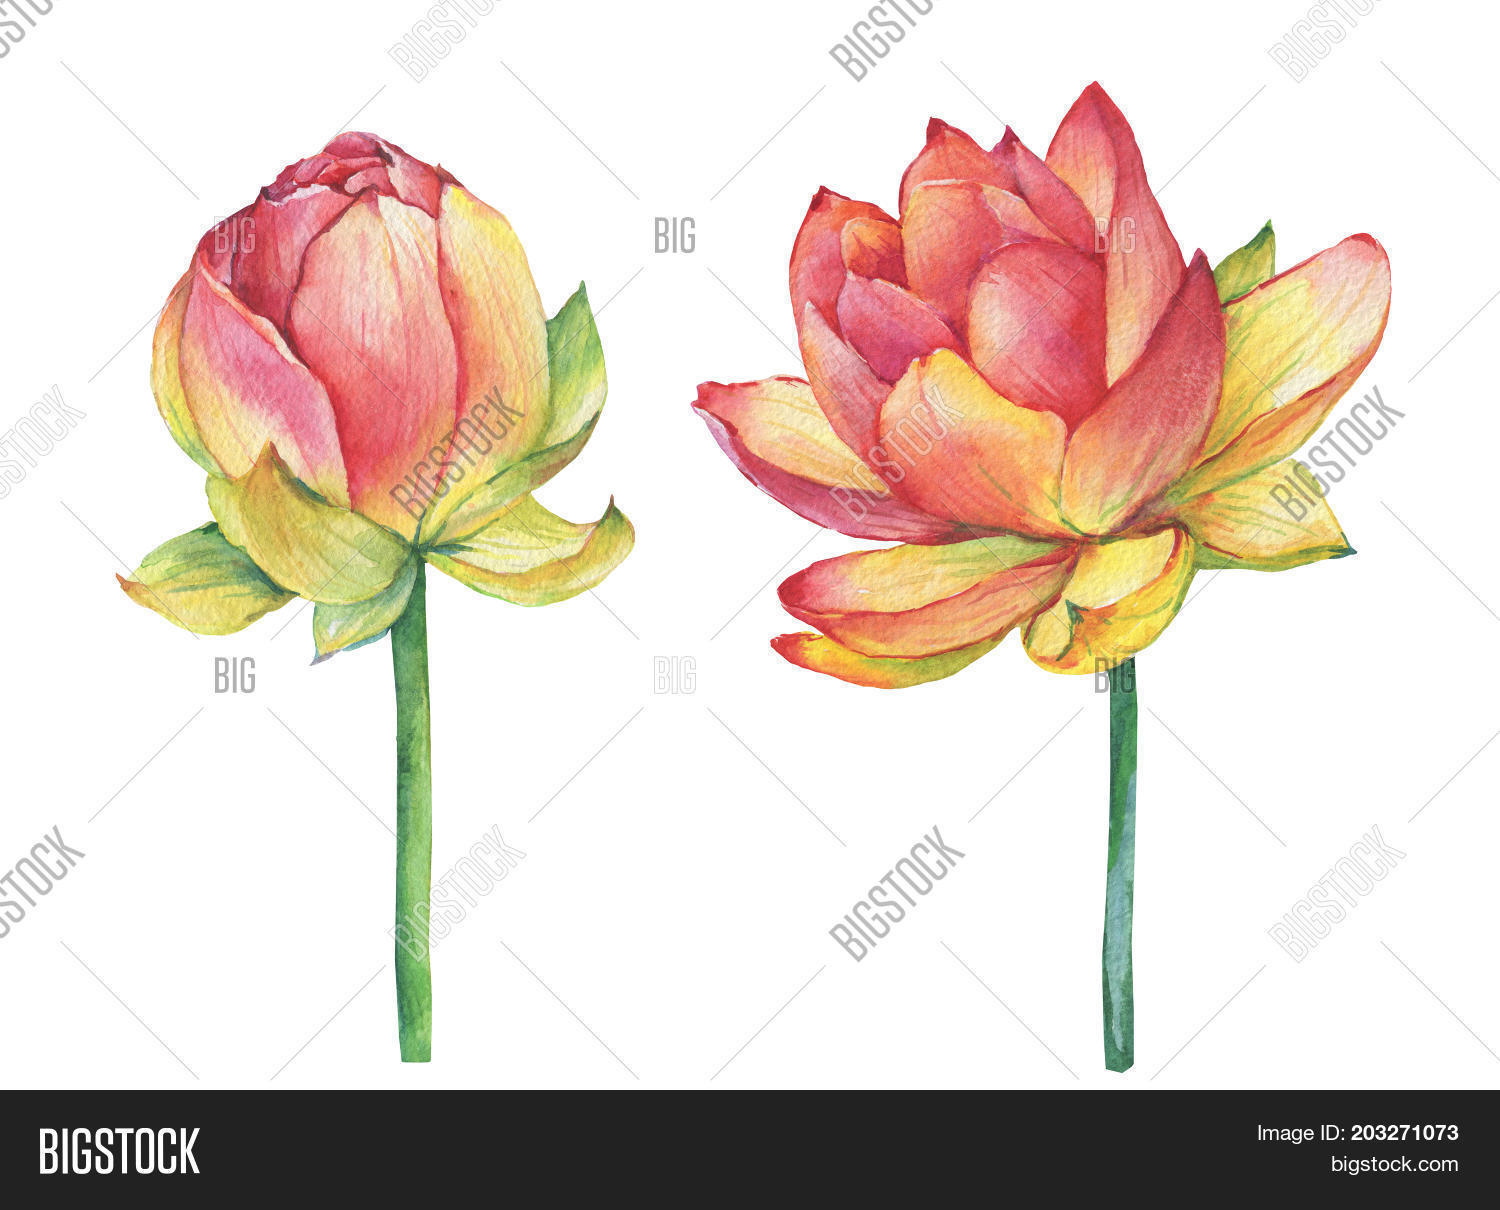 Exotic Pink Flowers Image Photo Free Trial Bigstock